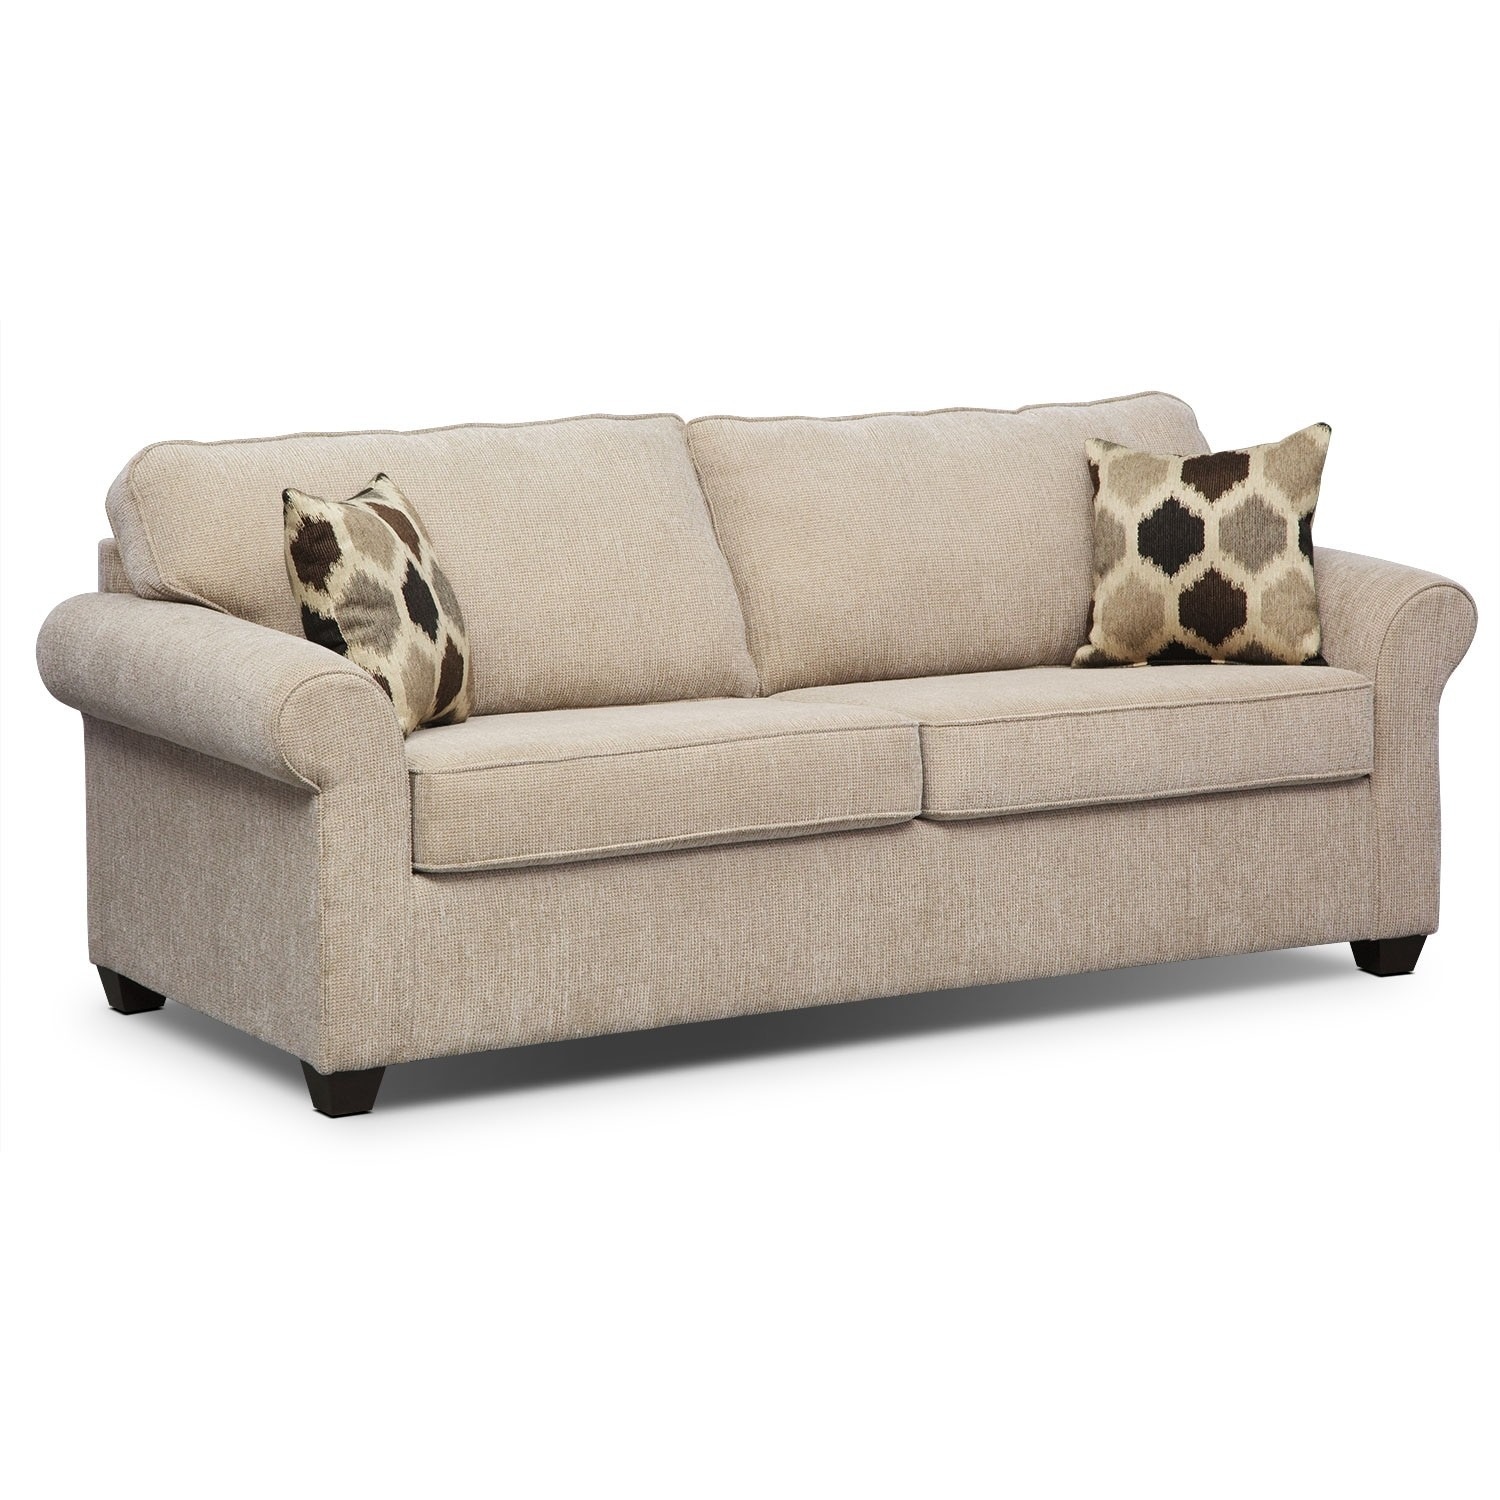 Memory Foam sofa Finest Fletcher Queen Memory Foam Sleeper sofa Beige Pattern